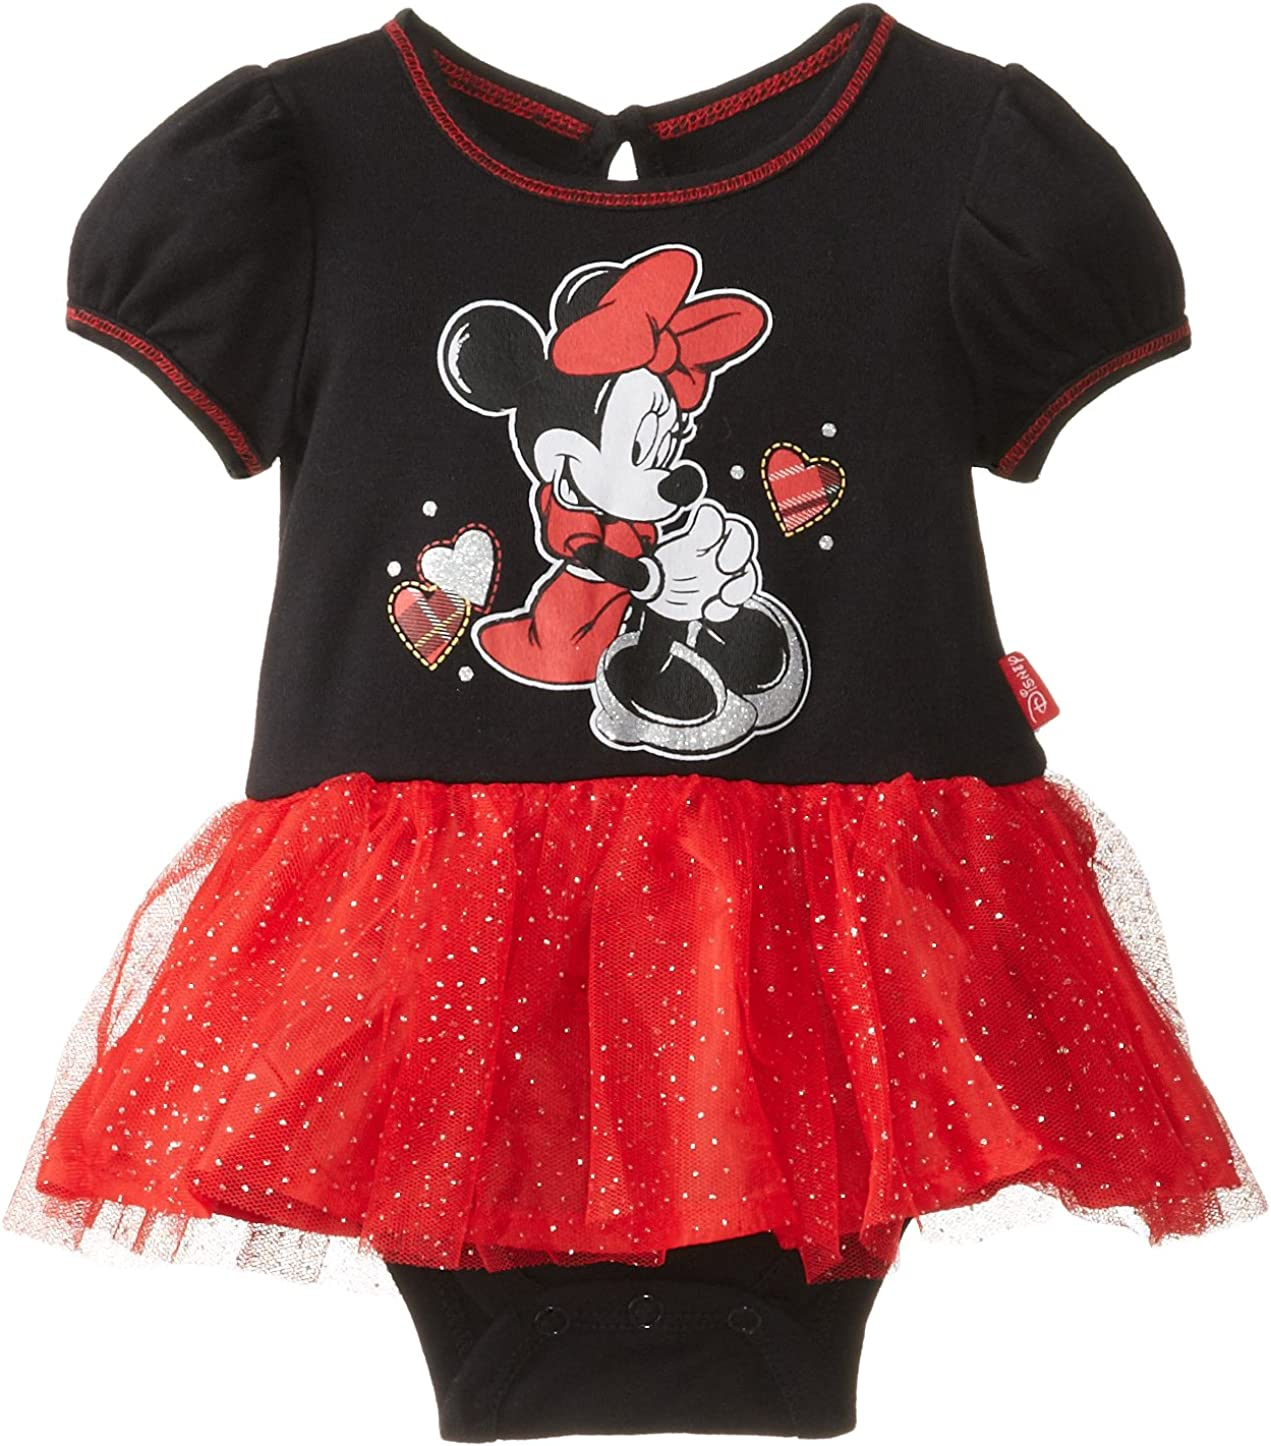 Disney Minnie Mickey Mouse Infant Baby Girls Bodysuit /& Skirt Outfit Set